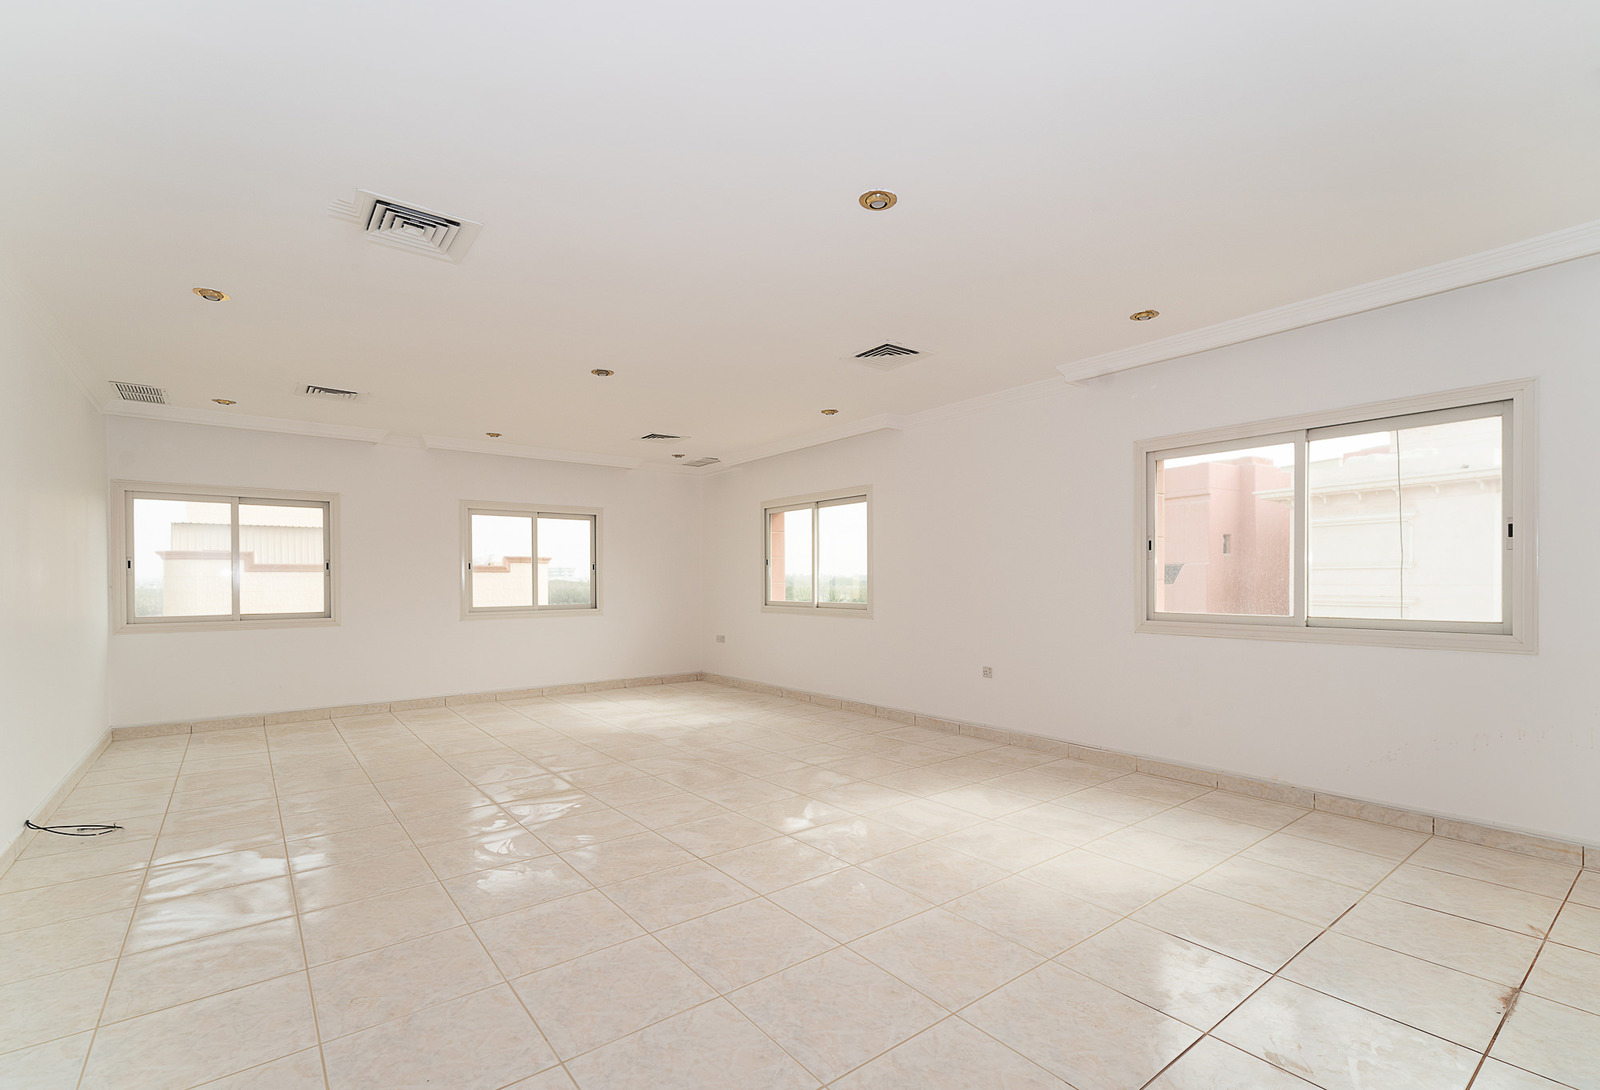 Shuhaha – very large, unfurnished, five bedroom floor